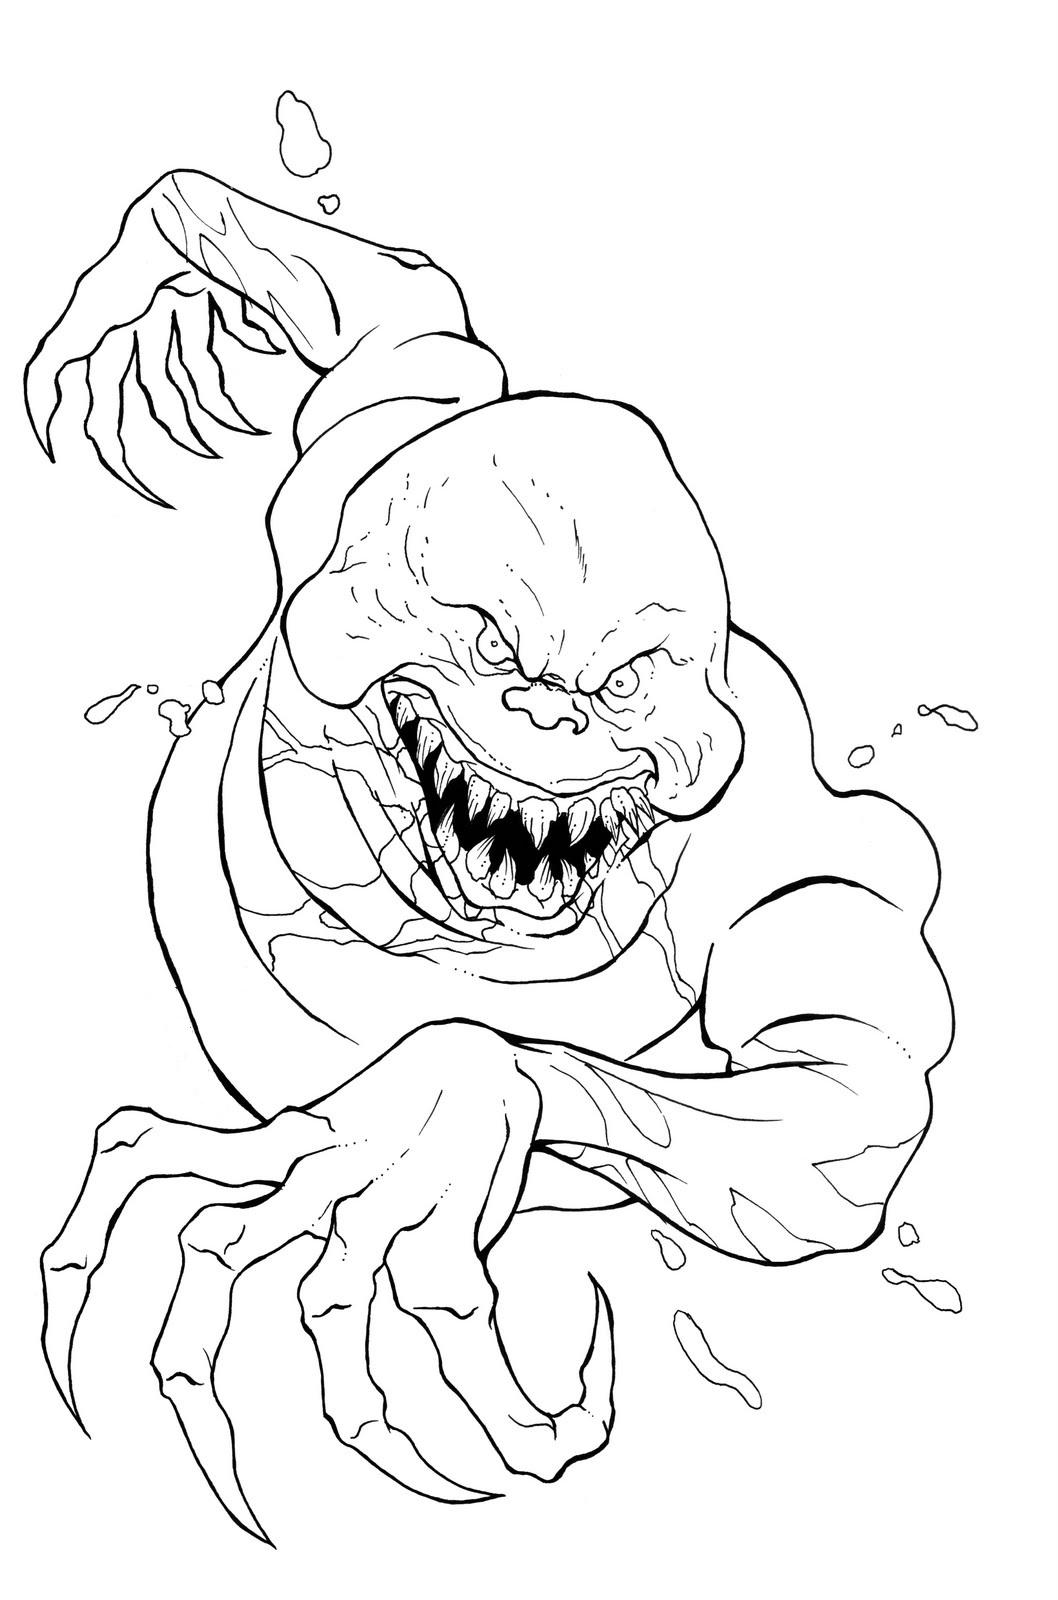 coloring ghostbusters free printable ghostbusters coloring pages for kids coloring ghostbusters 1 1